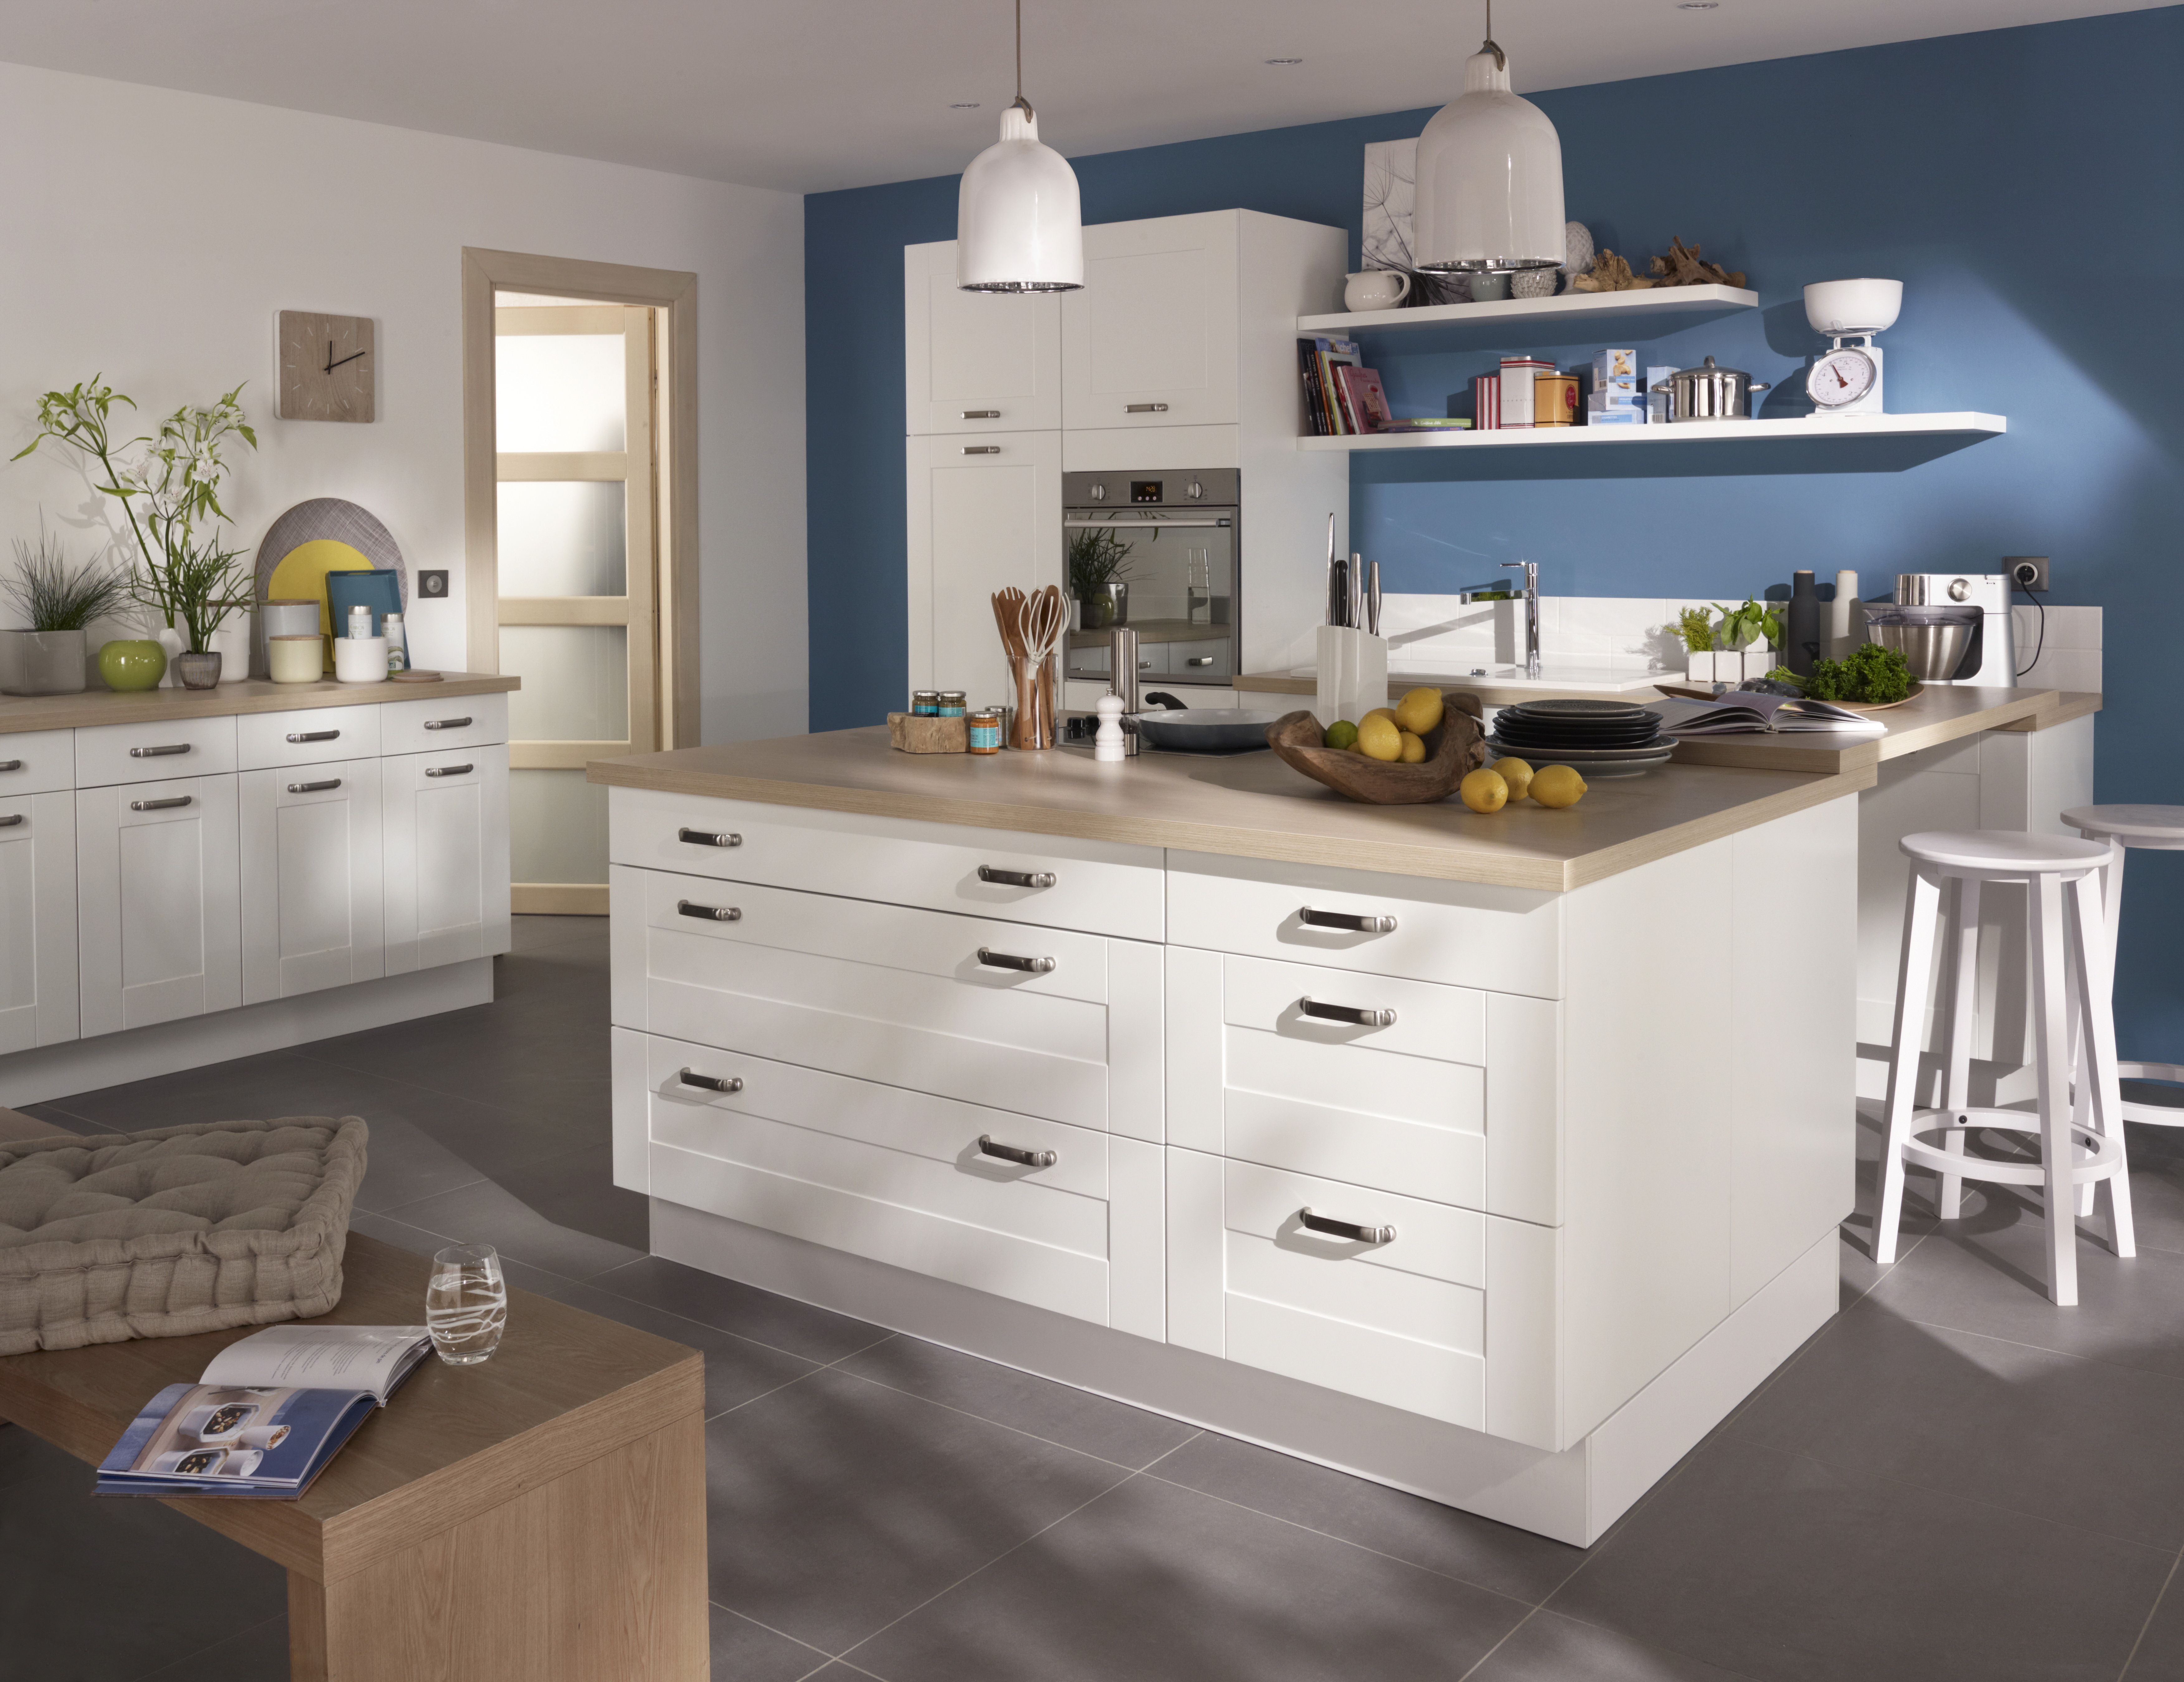 cuisine cooke lewis kadral blanc cuisines pinterest meuble de cuisine castorama et de cuisine. Black Bedroom Furniture Sets. Home Design Ideas